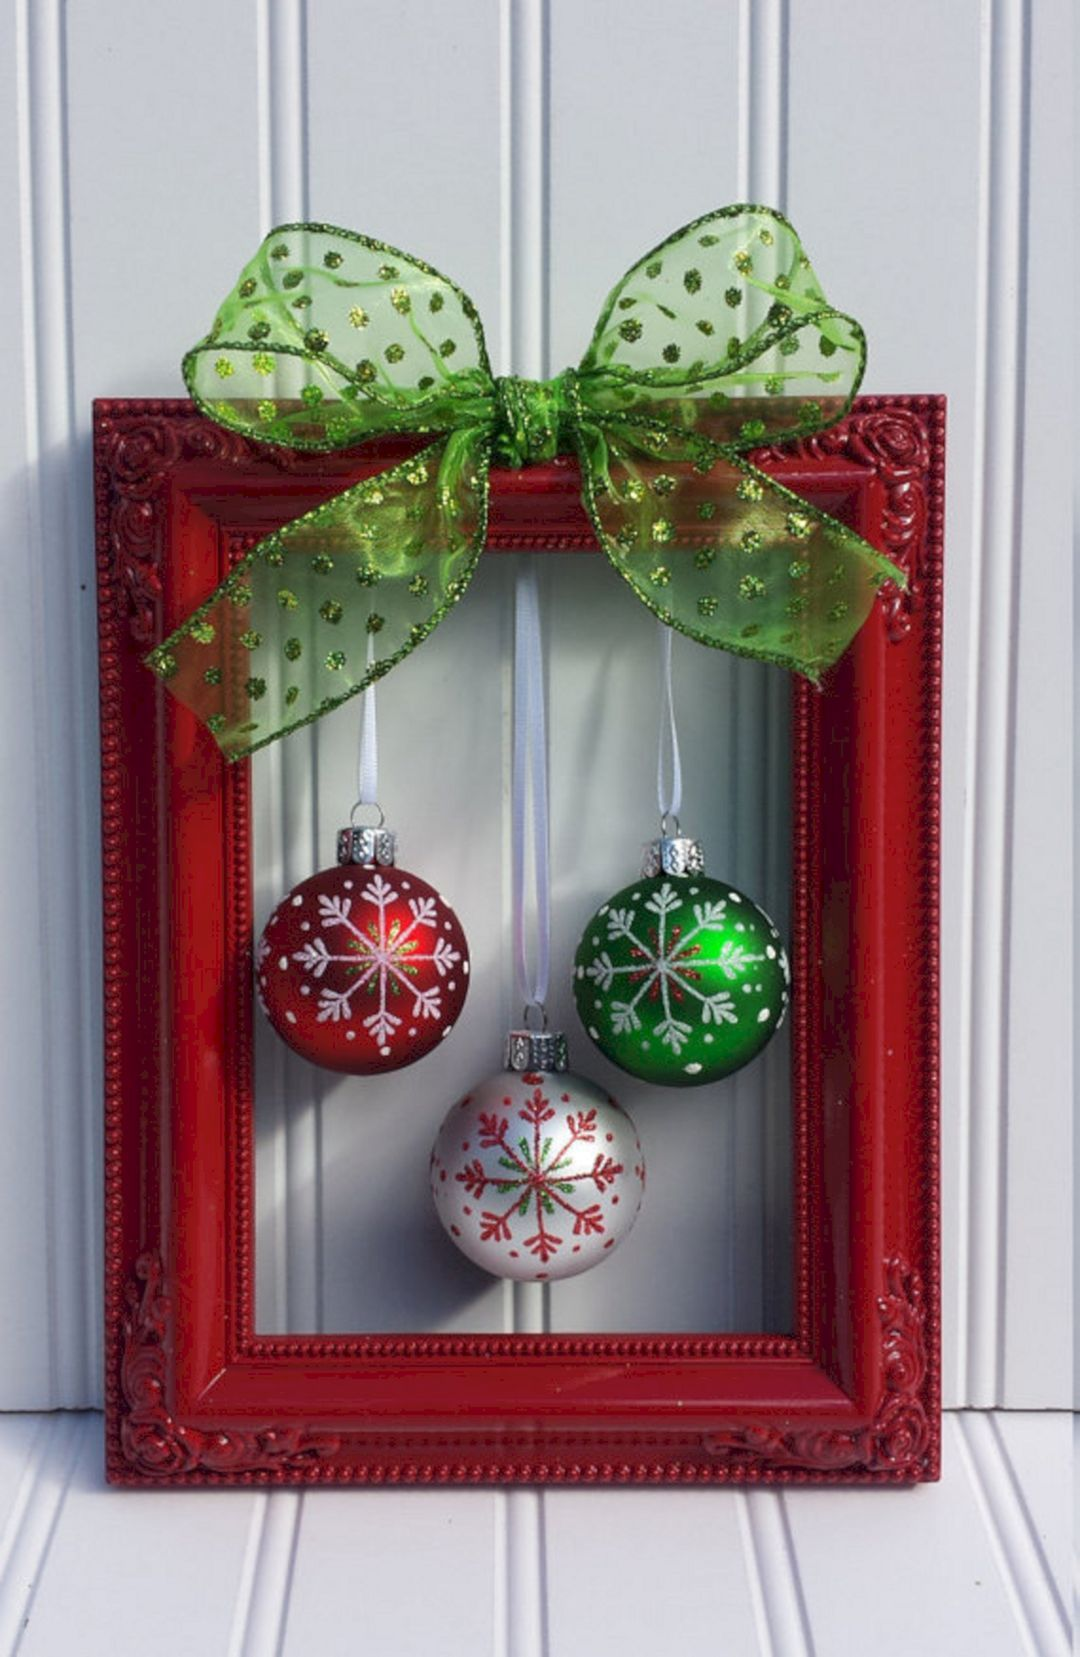 70+ DIY Christmas Ornaments For Home Decorations Ideas   Weihnachten